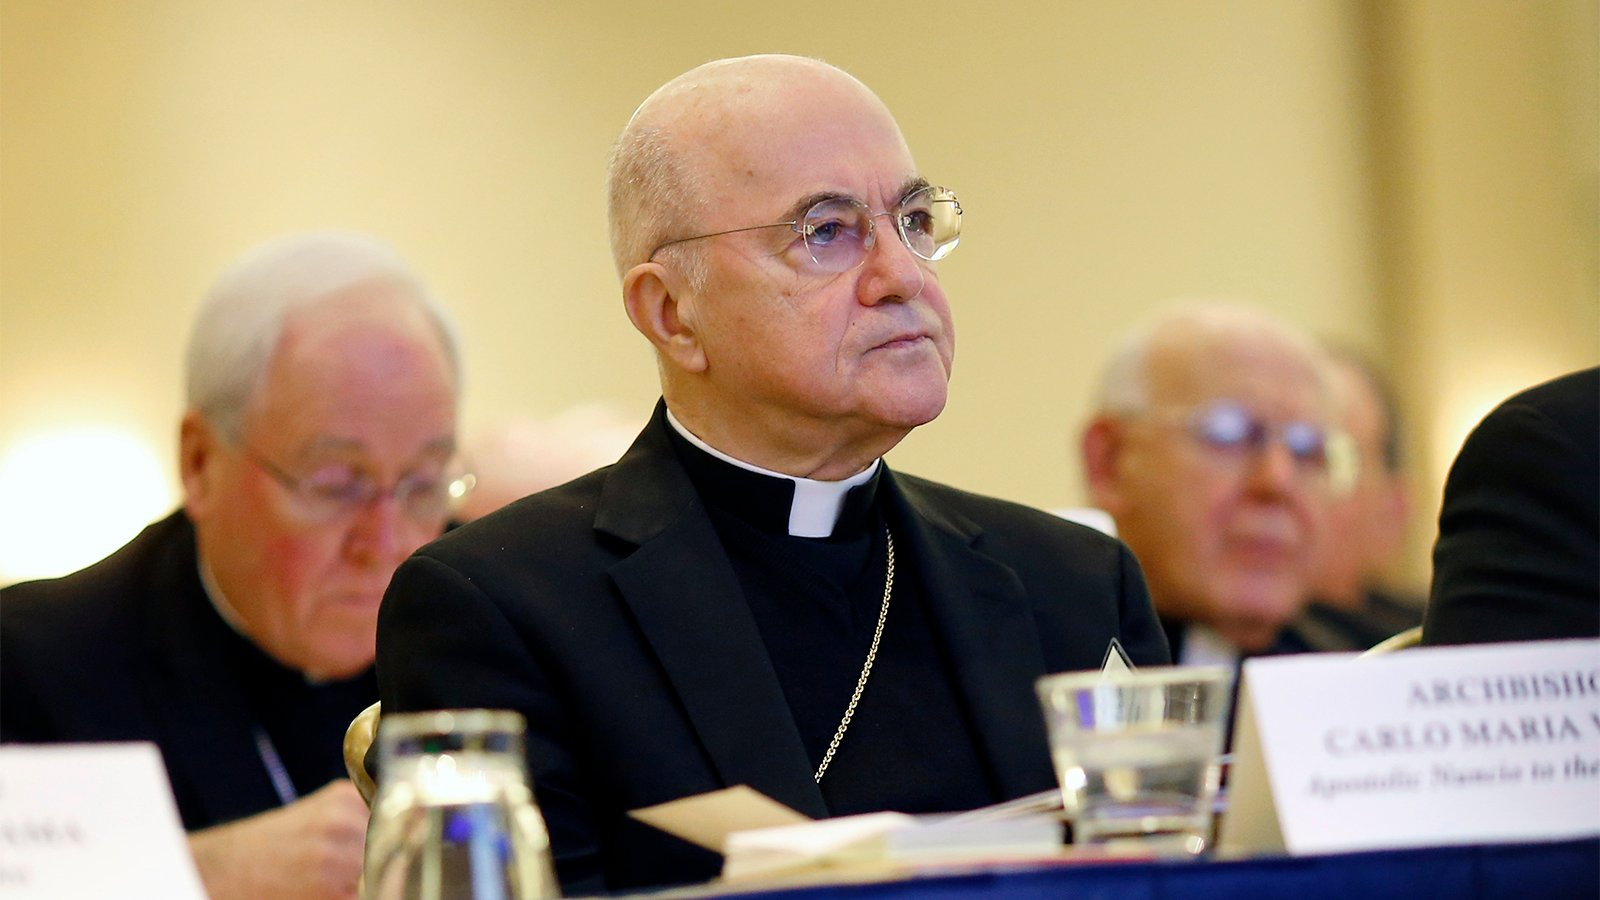 Archbishop Carlo Maria Viganò listens to remarks at the United States Conference of Catholic Bishops' annual fall meeting on Nov. 16, 2015, in Baltimore. (AP Photo/Patrick Semansky)